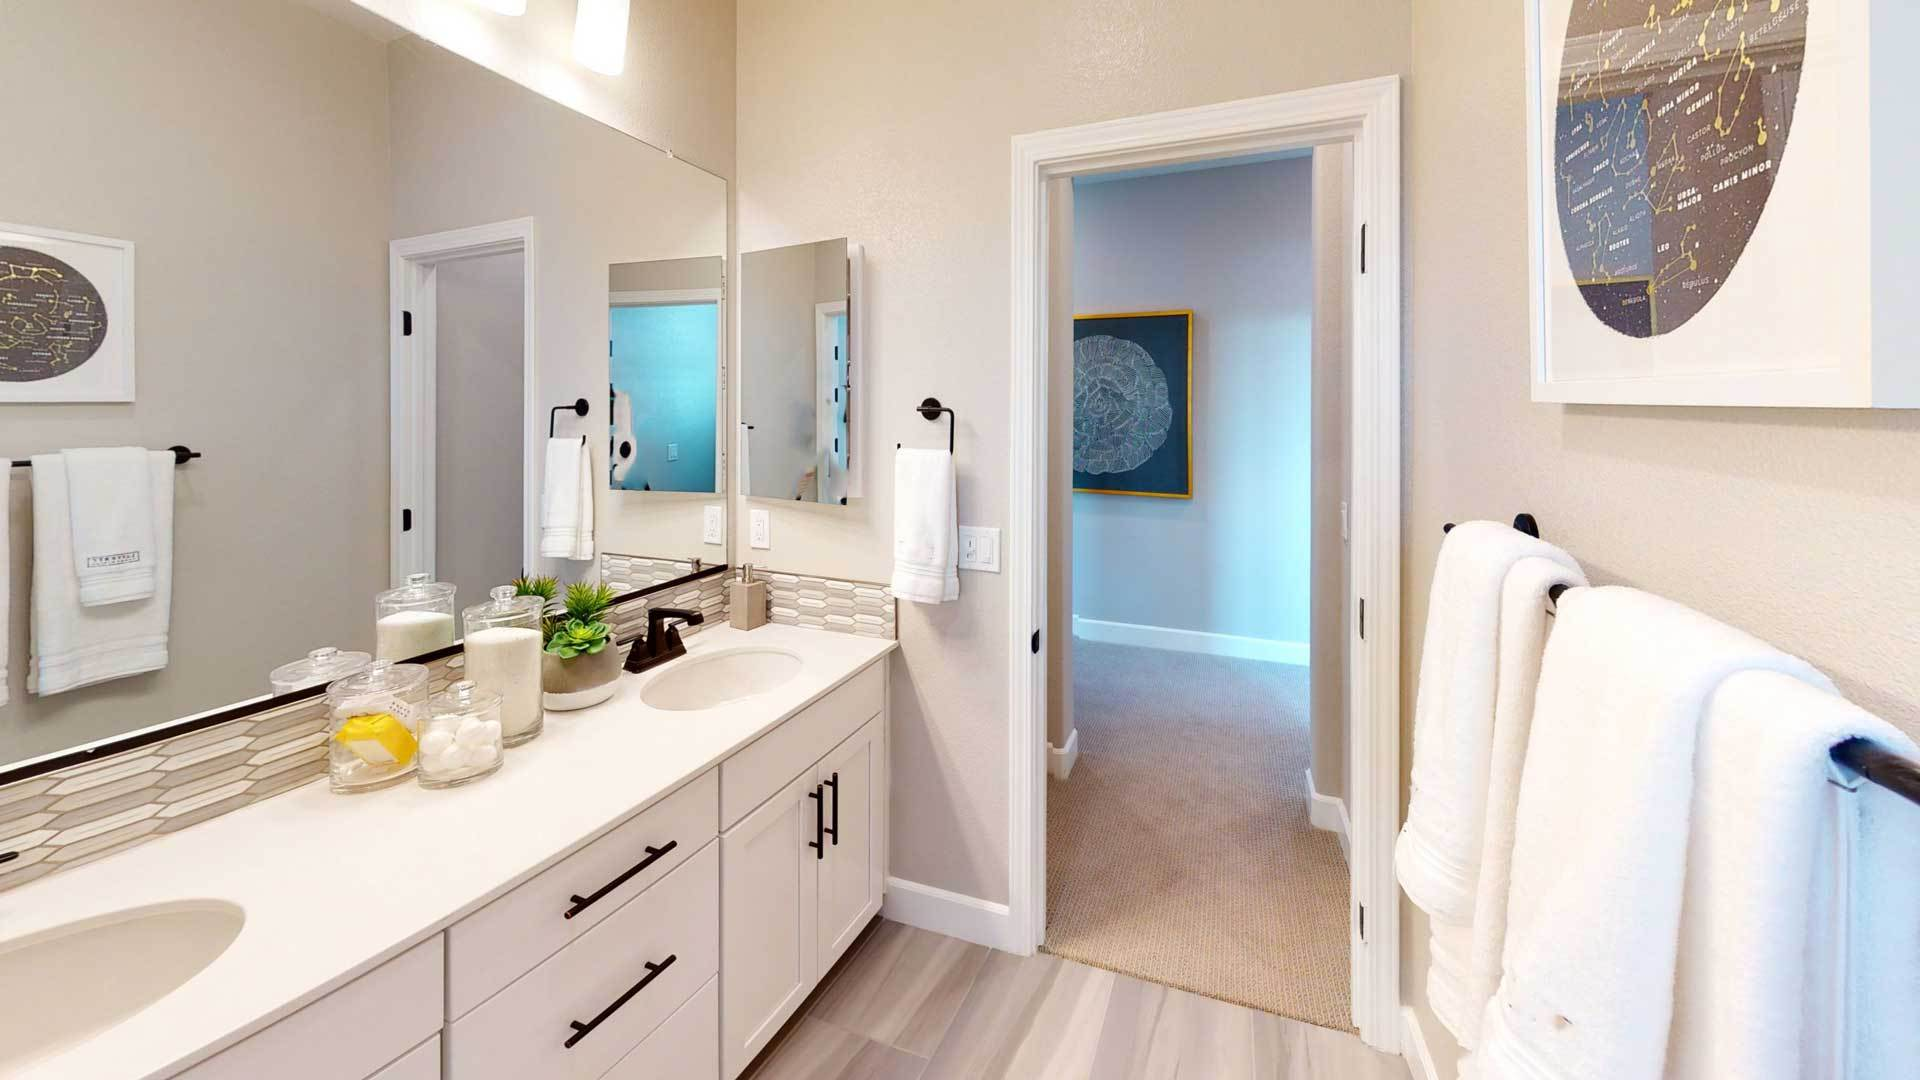 Bathroom featured in the Residence 3 By Next New Homes Group in Sacramento, CA